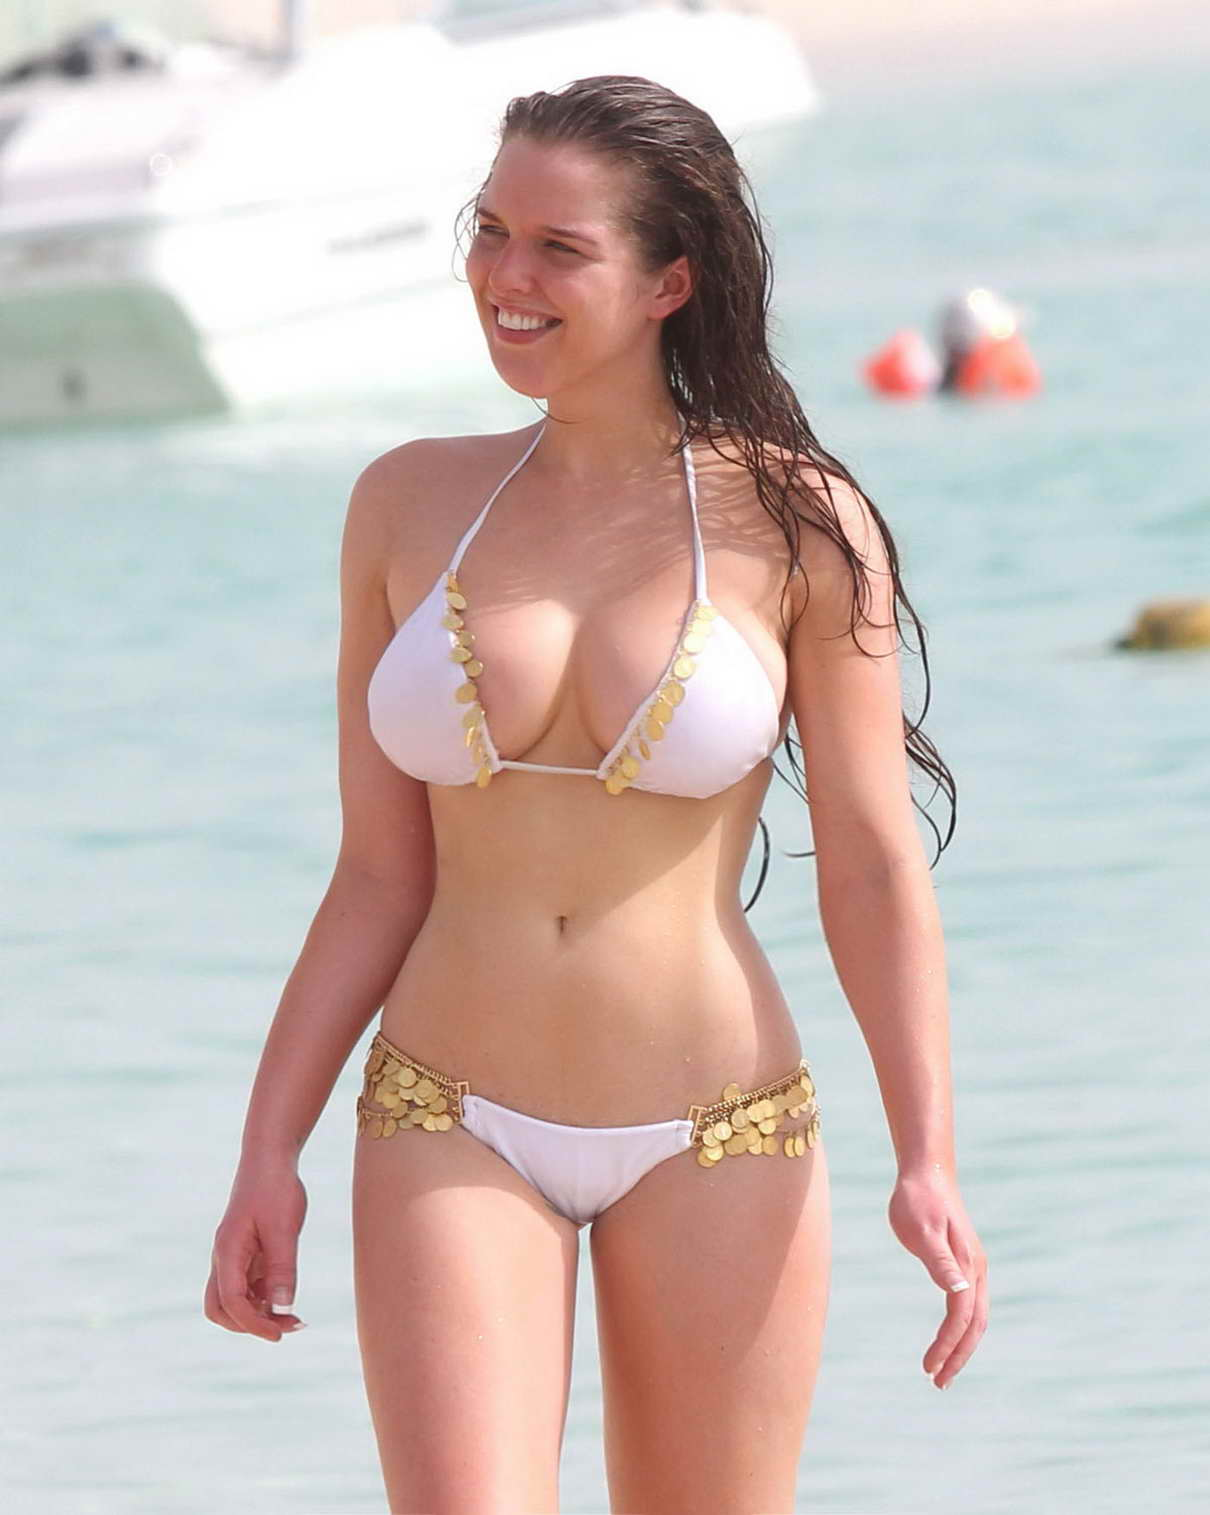 Helen Flanagan in a Stunning Bikini on the Beach in Dubai-3 ... Alessandra Ambrosio